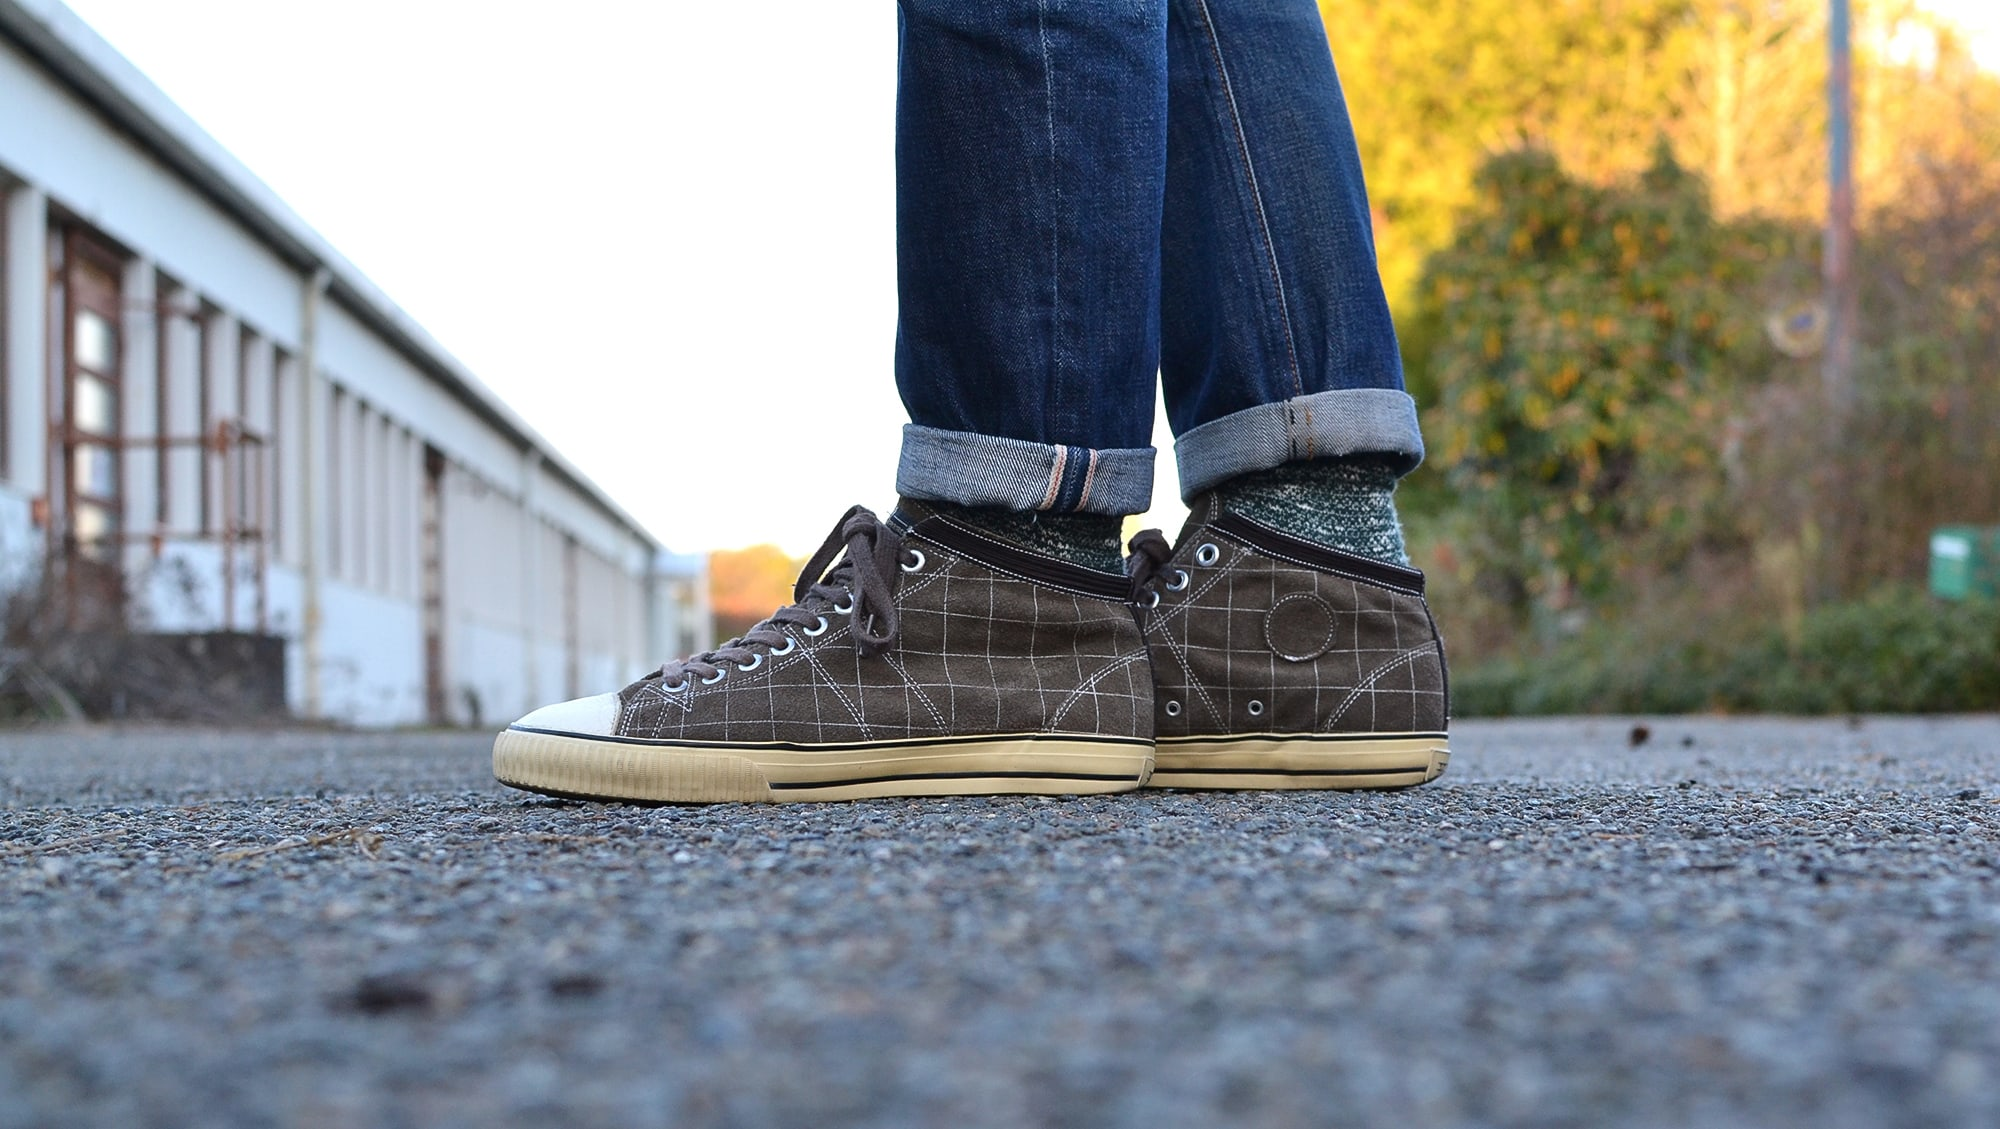 Visvim kiefer sneakers with the collaboration of Jpanaese label AFFA